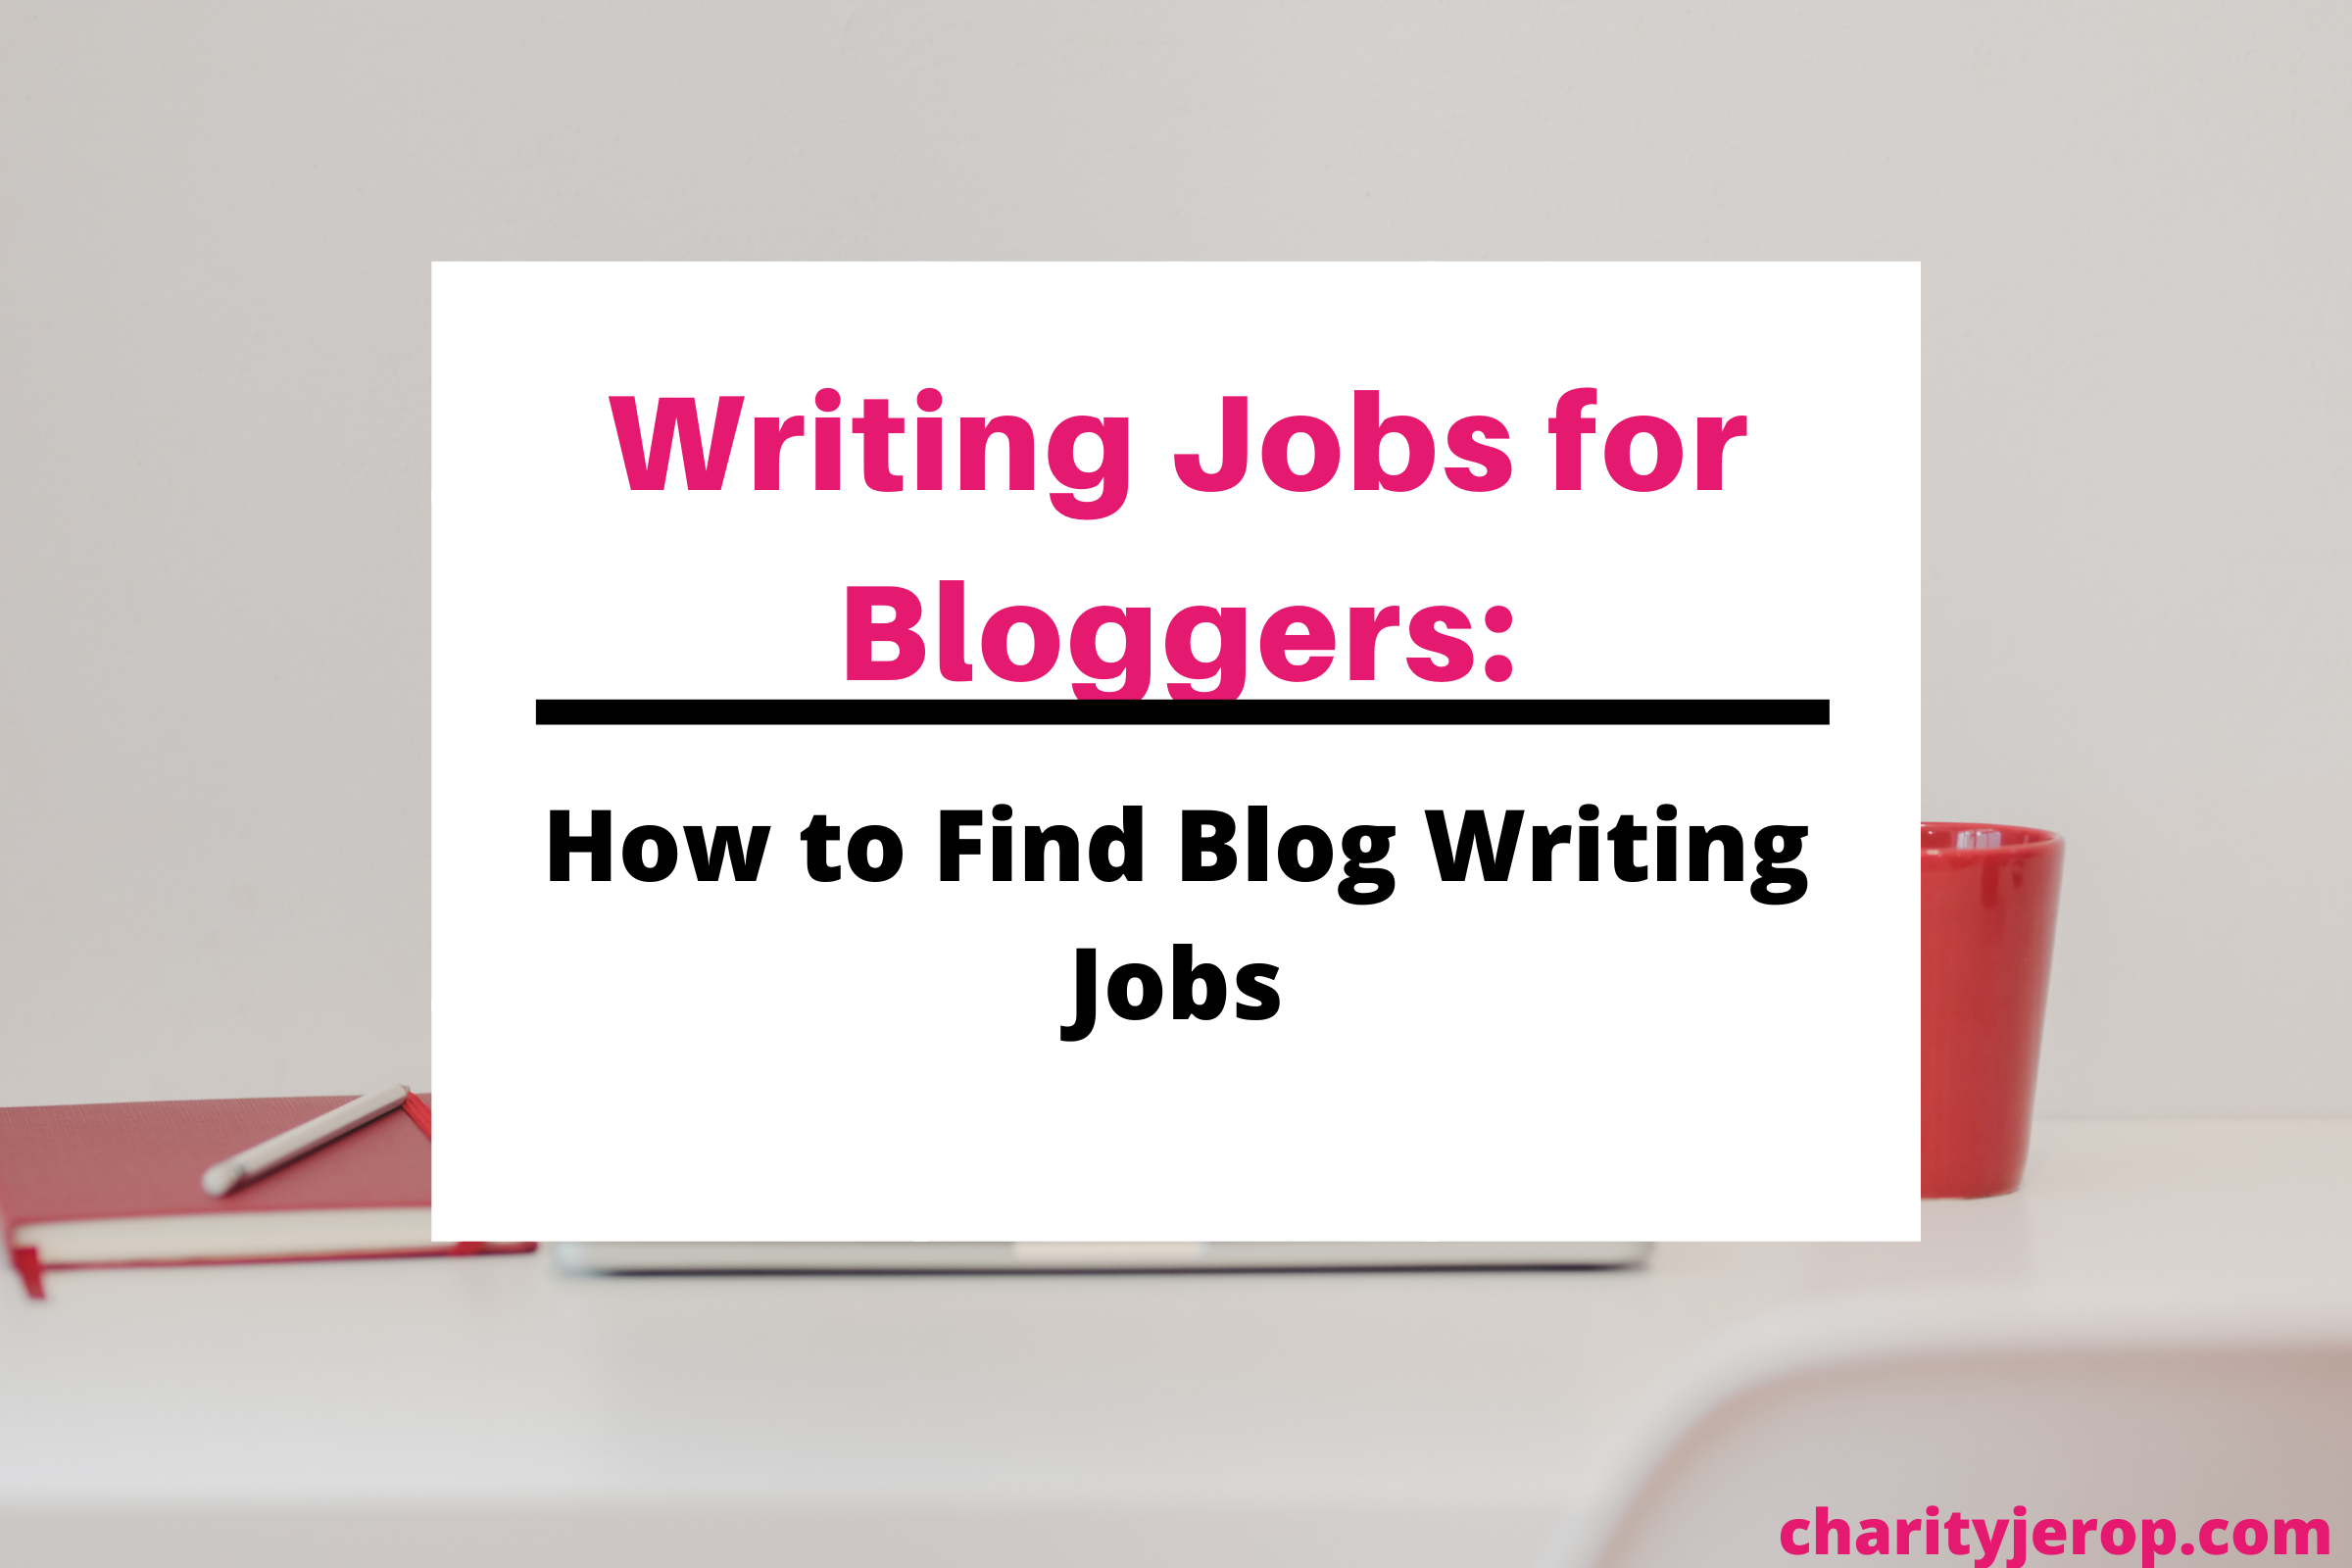 Writing Jobs for Bloggers: How to Find Blog Writing Jobs